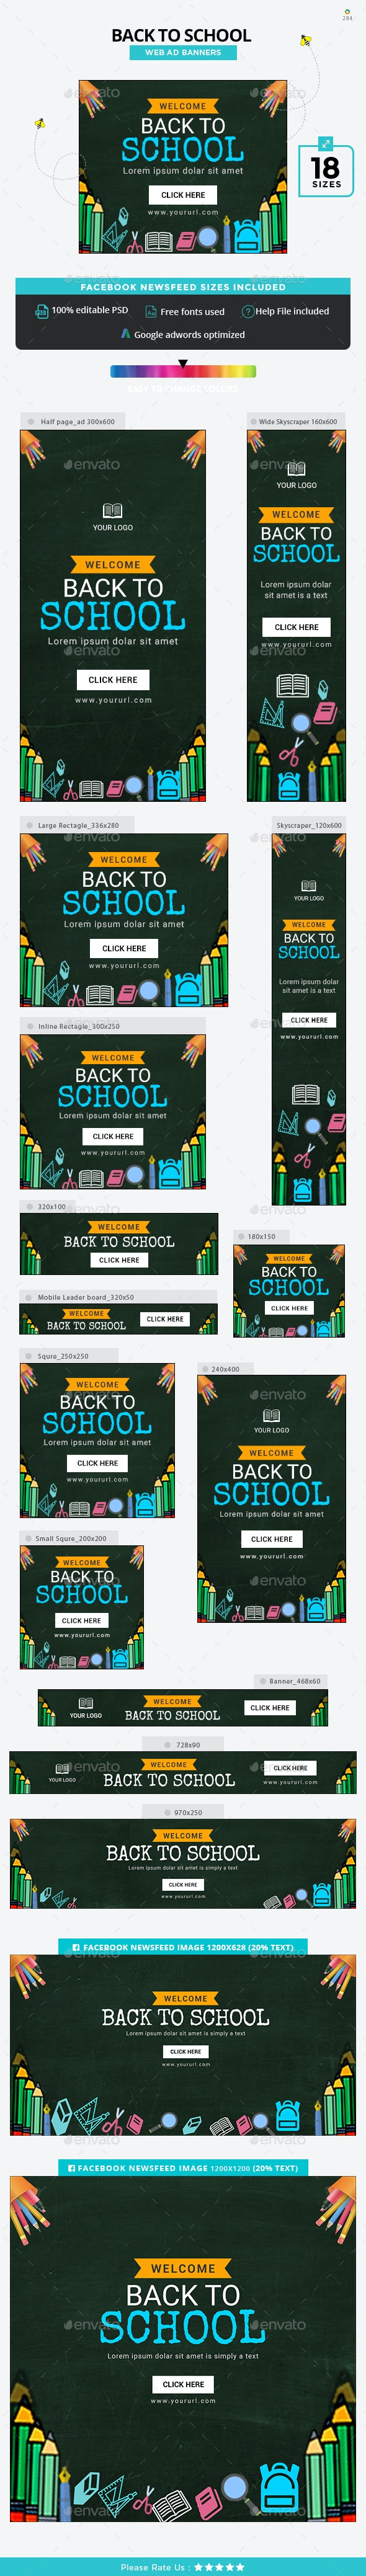 Back to School Banners - Banners & Ads Web Elements